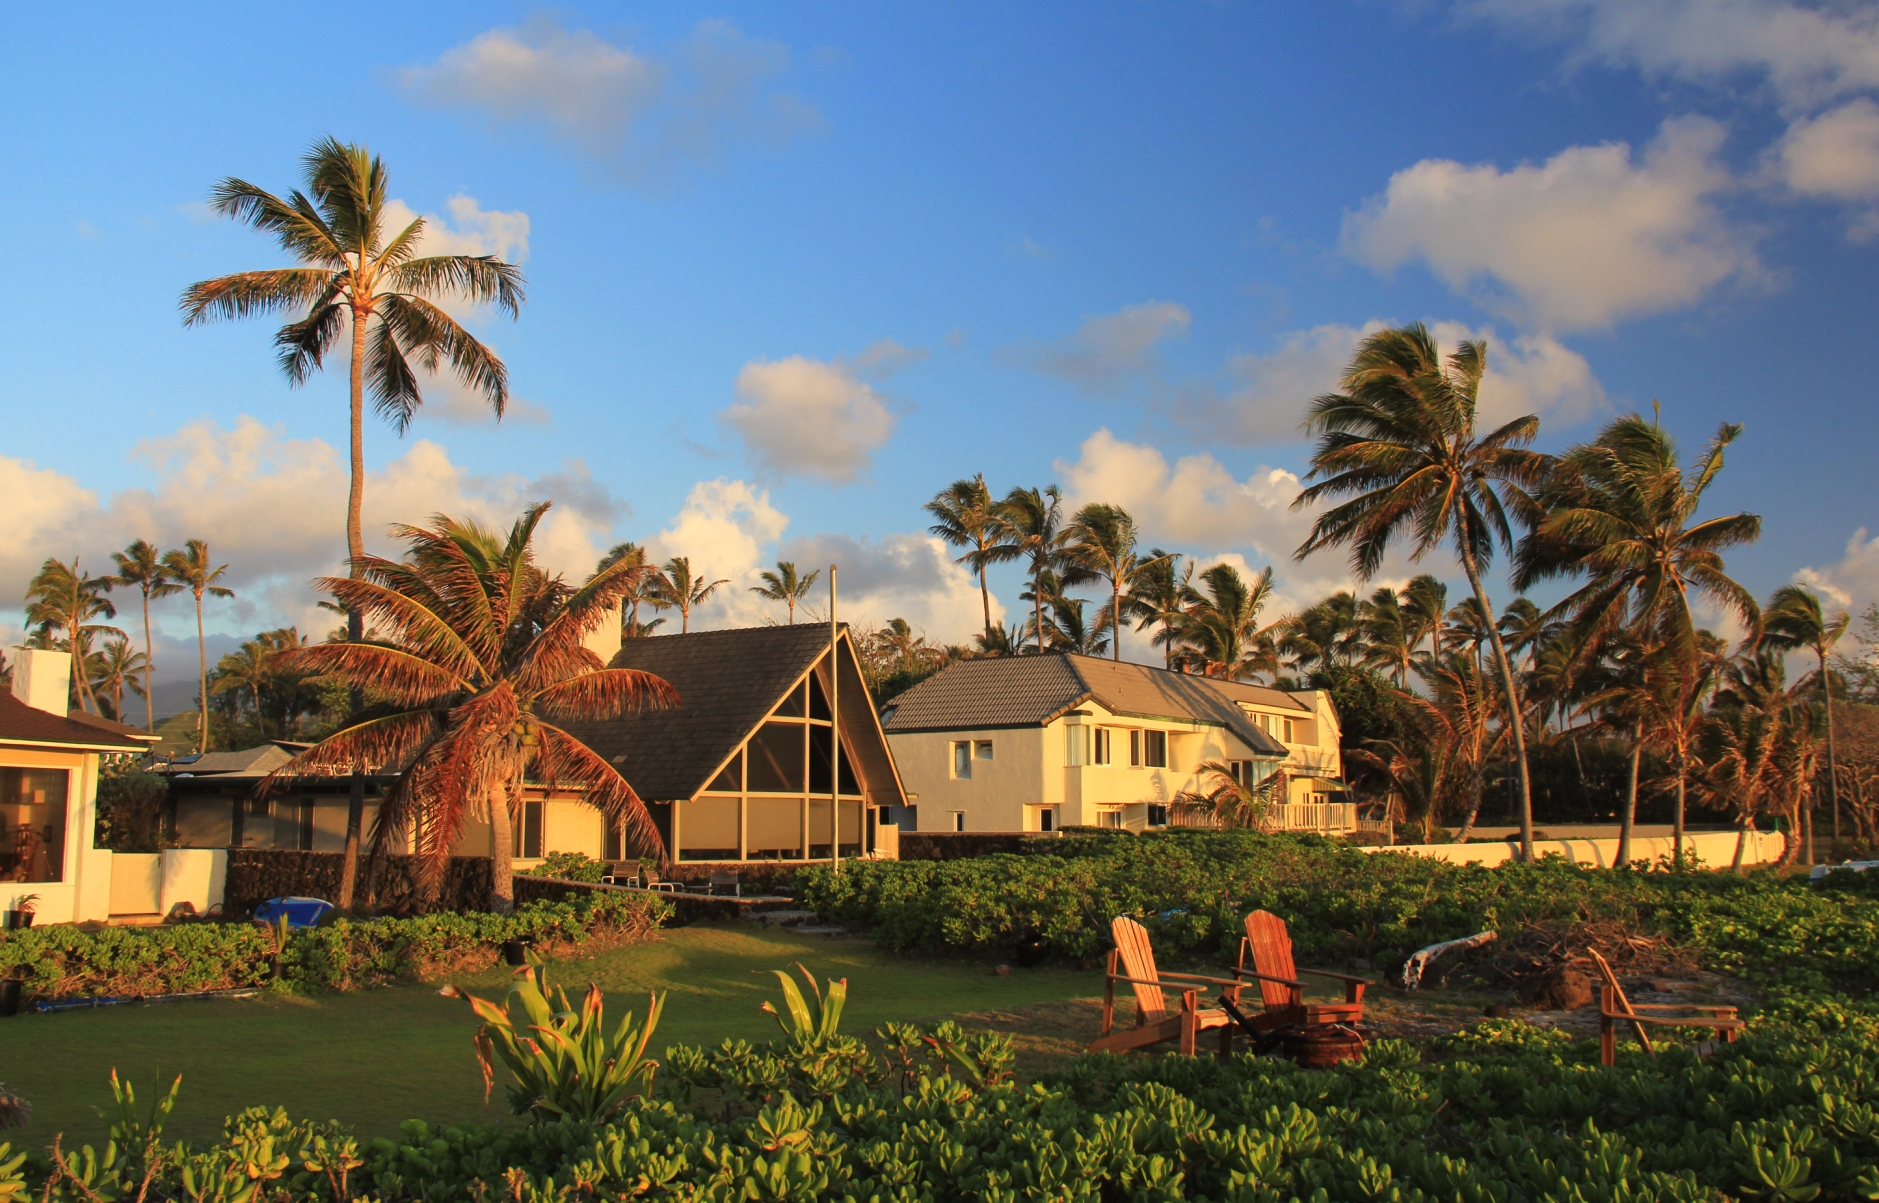 The Complete Guide To Building And Remodeling In Hawaii